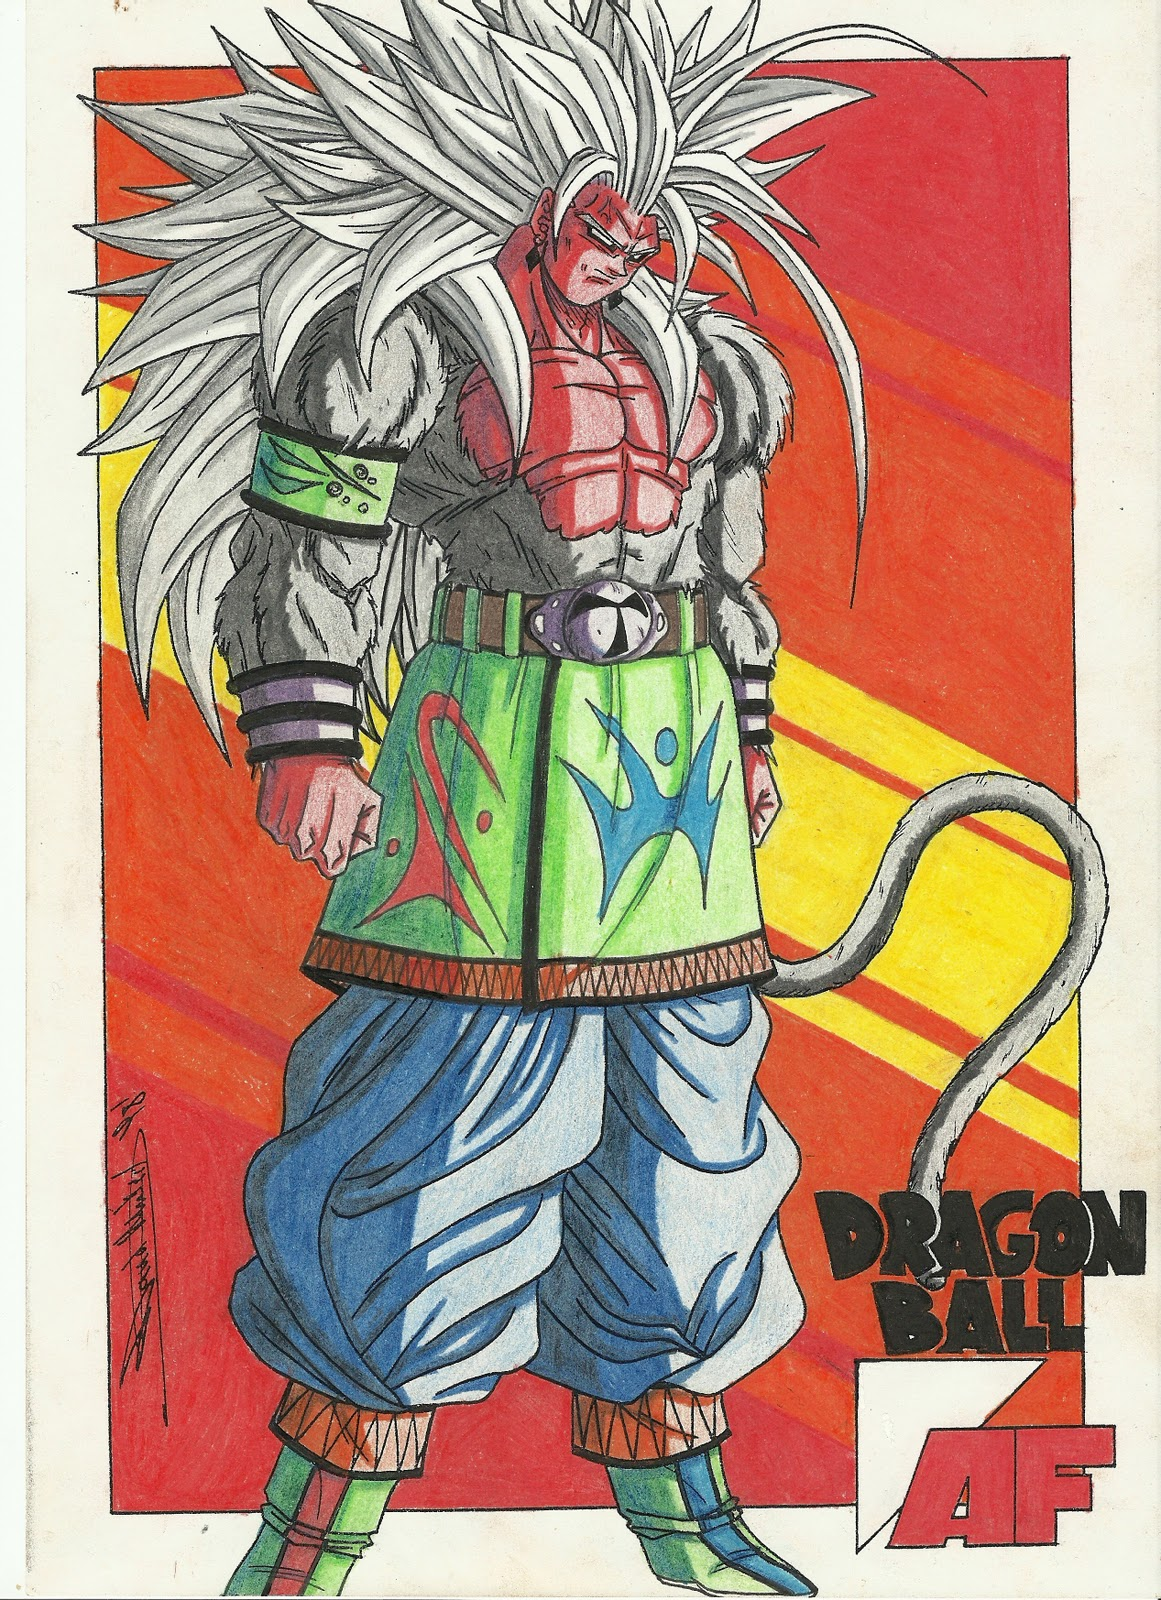 Dragon ball af after the future february 2012 - Goku 5 super saiyan ...